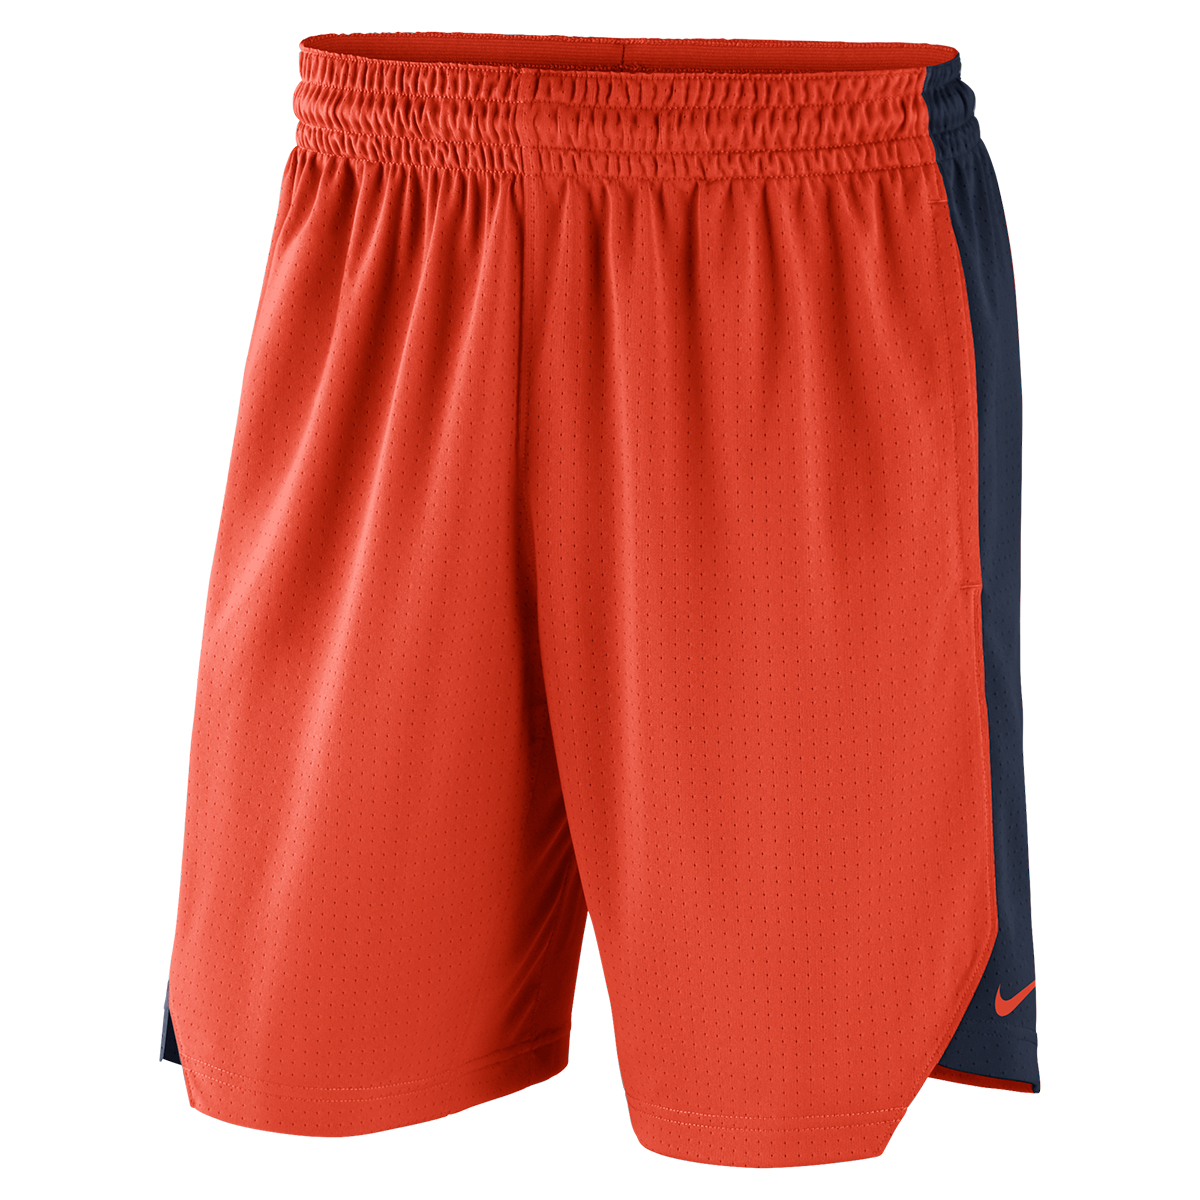 University of Virginia Orange Nike Shorts